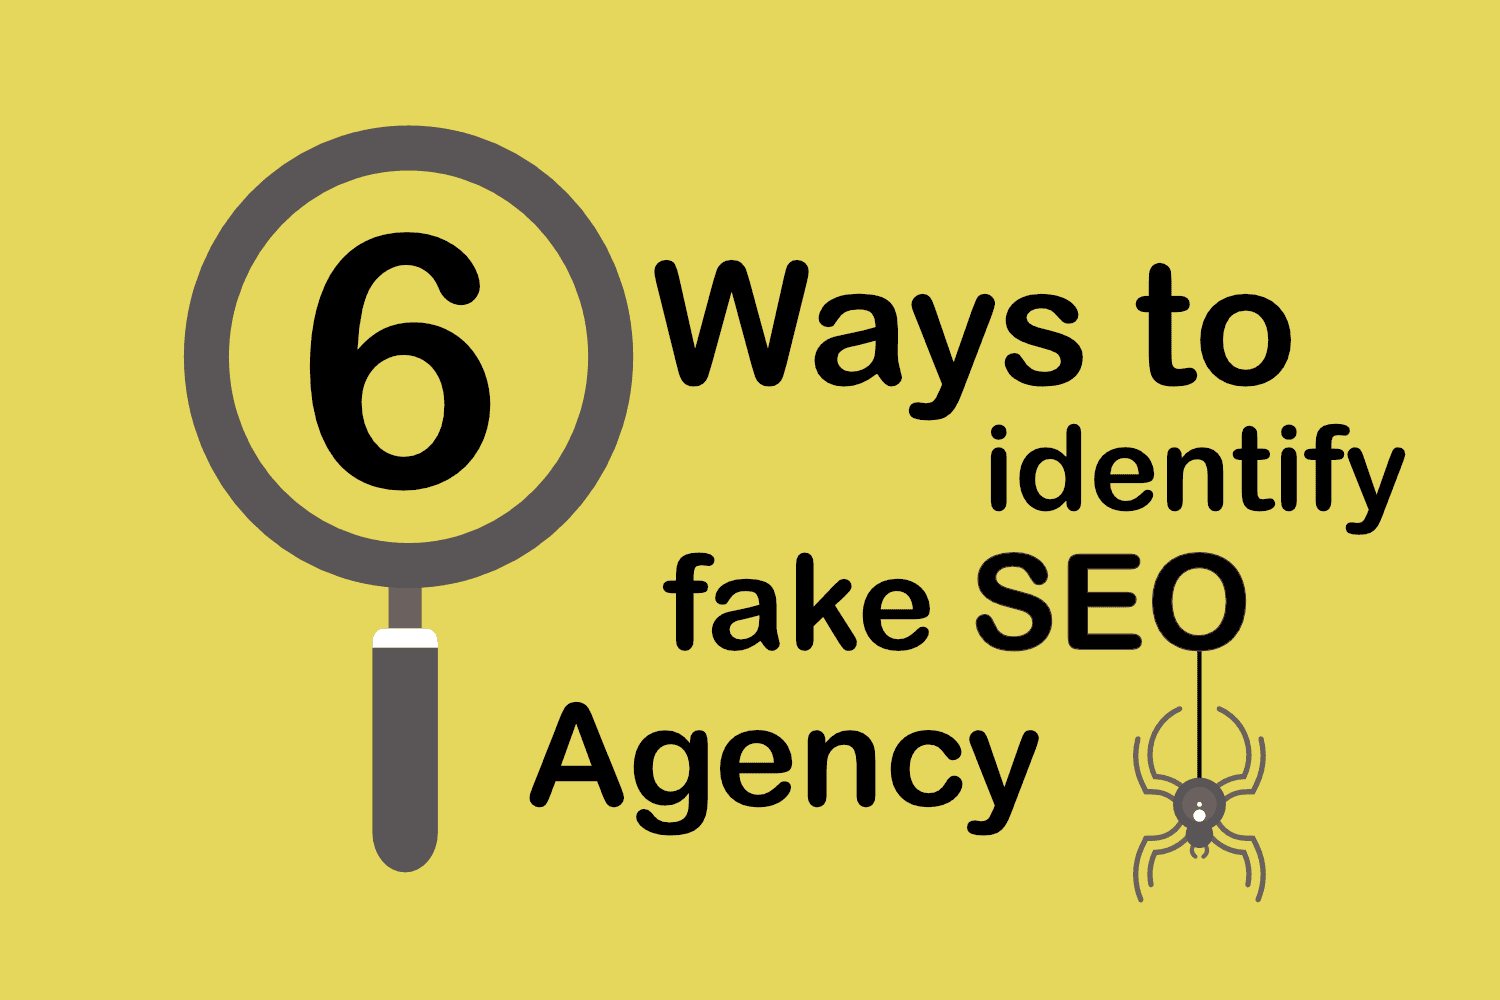 6 Ways to Identify & Detect Fake SEO Agency/Consultant